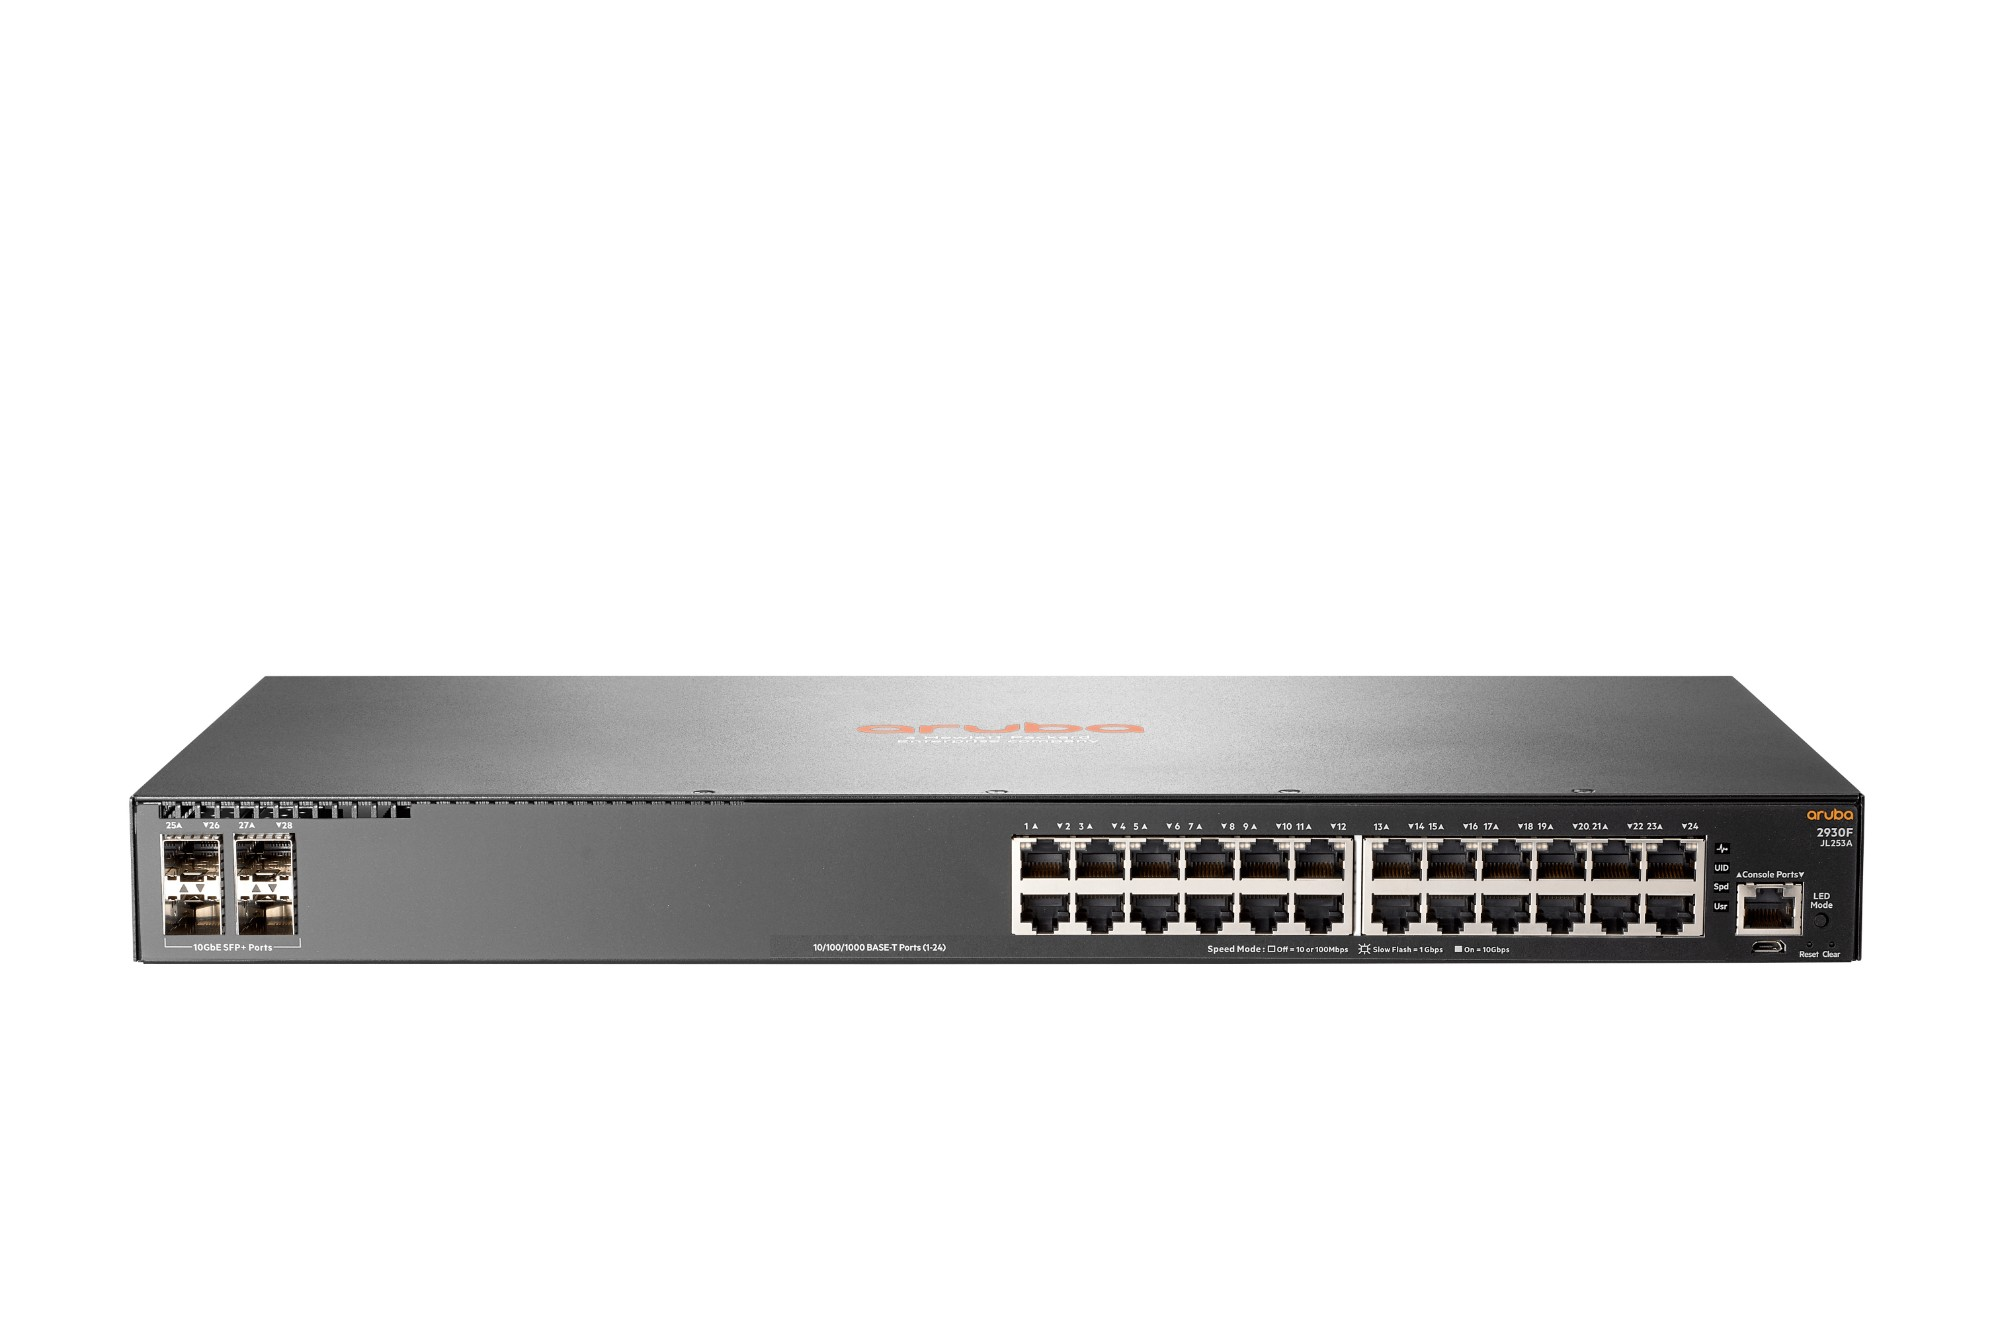 Hewlett Packard Enterprise Aruba 2930F 24G 4SFP+ Managed L3 Gigabit Ethernet (10/100/1000) 1U Grey